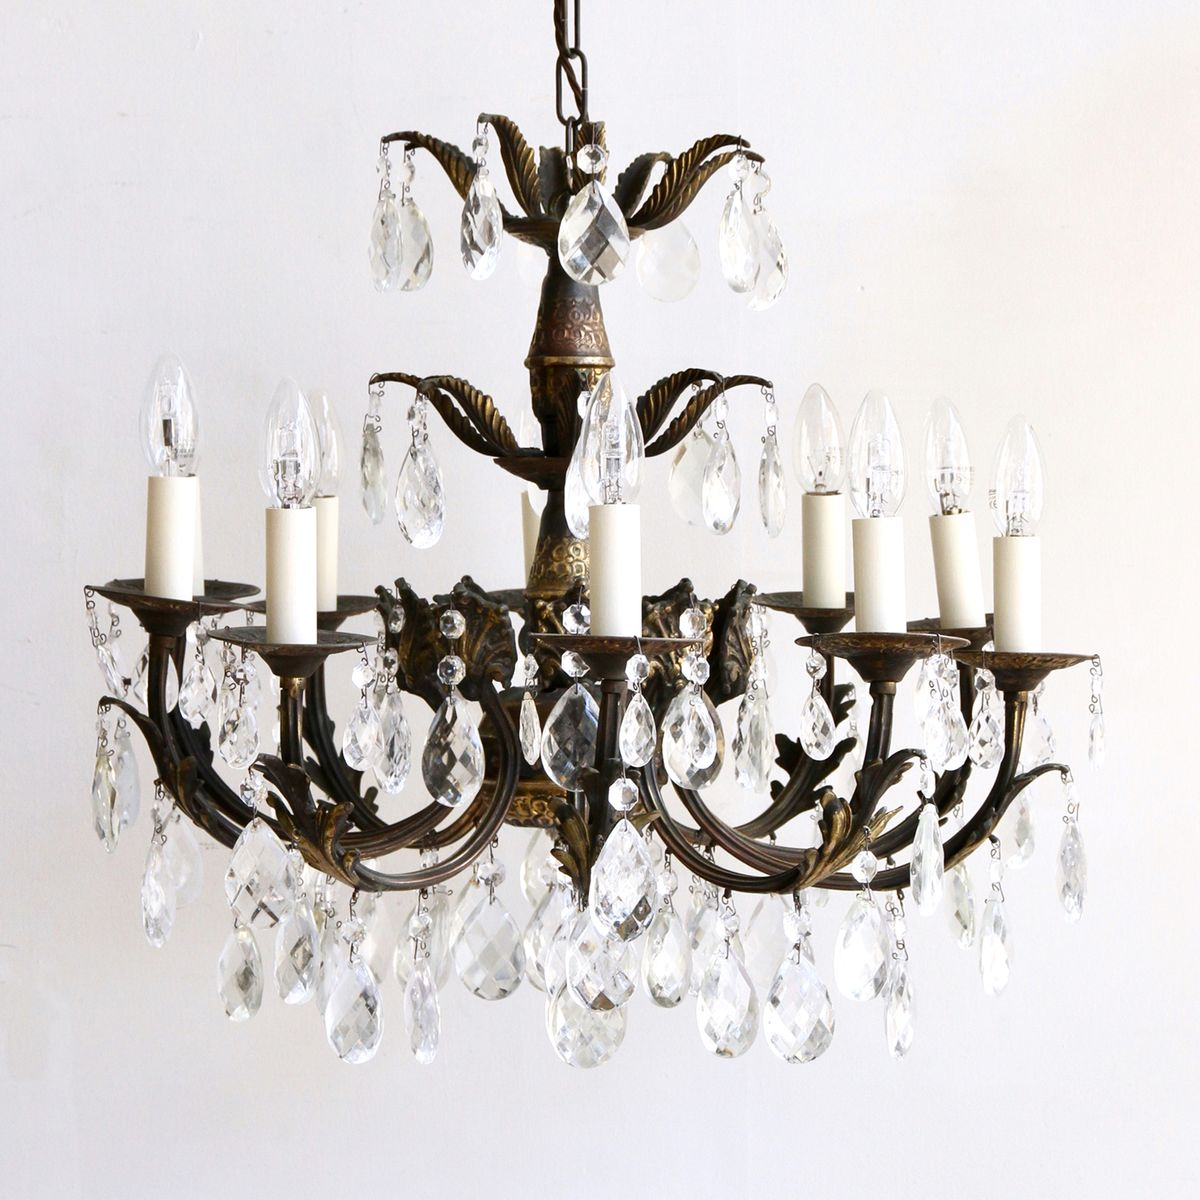 Ornate brass glass chandelier 1930s for sale at pamono ornate brass glass chandelier 1930s aloadofball Image collections